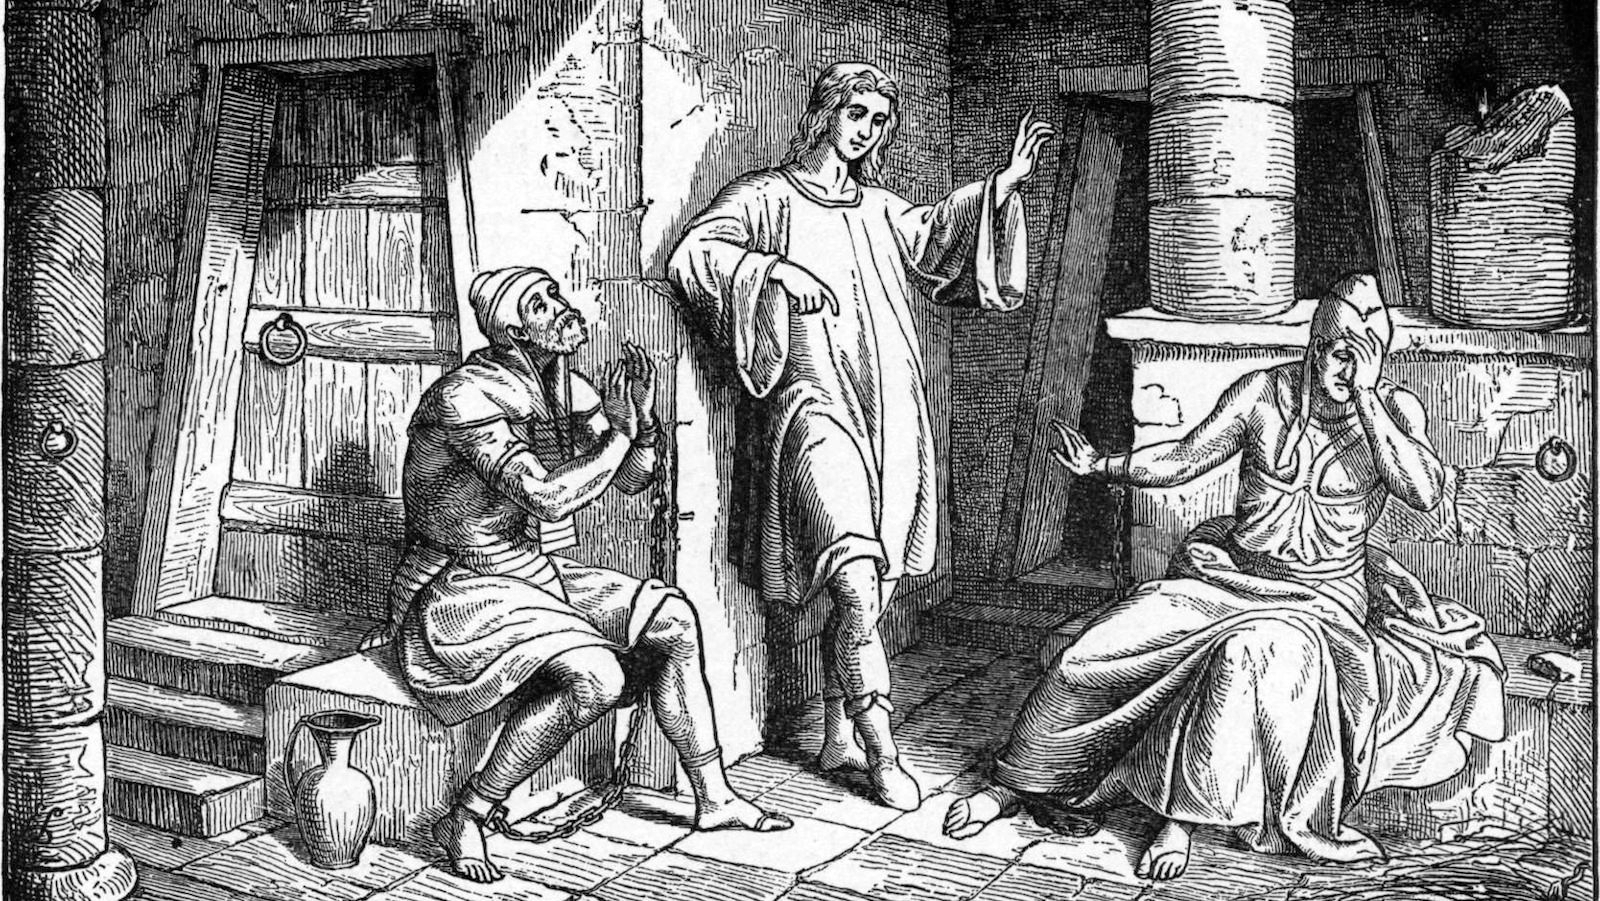 Foster_Bible_Pictures_0051-1_Joseph_Interprets_the_Prisoners'_Dreams